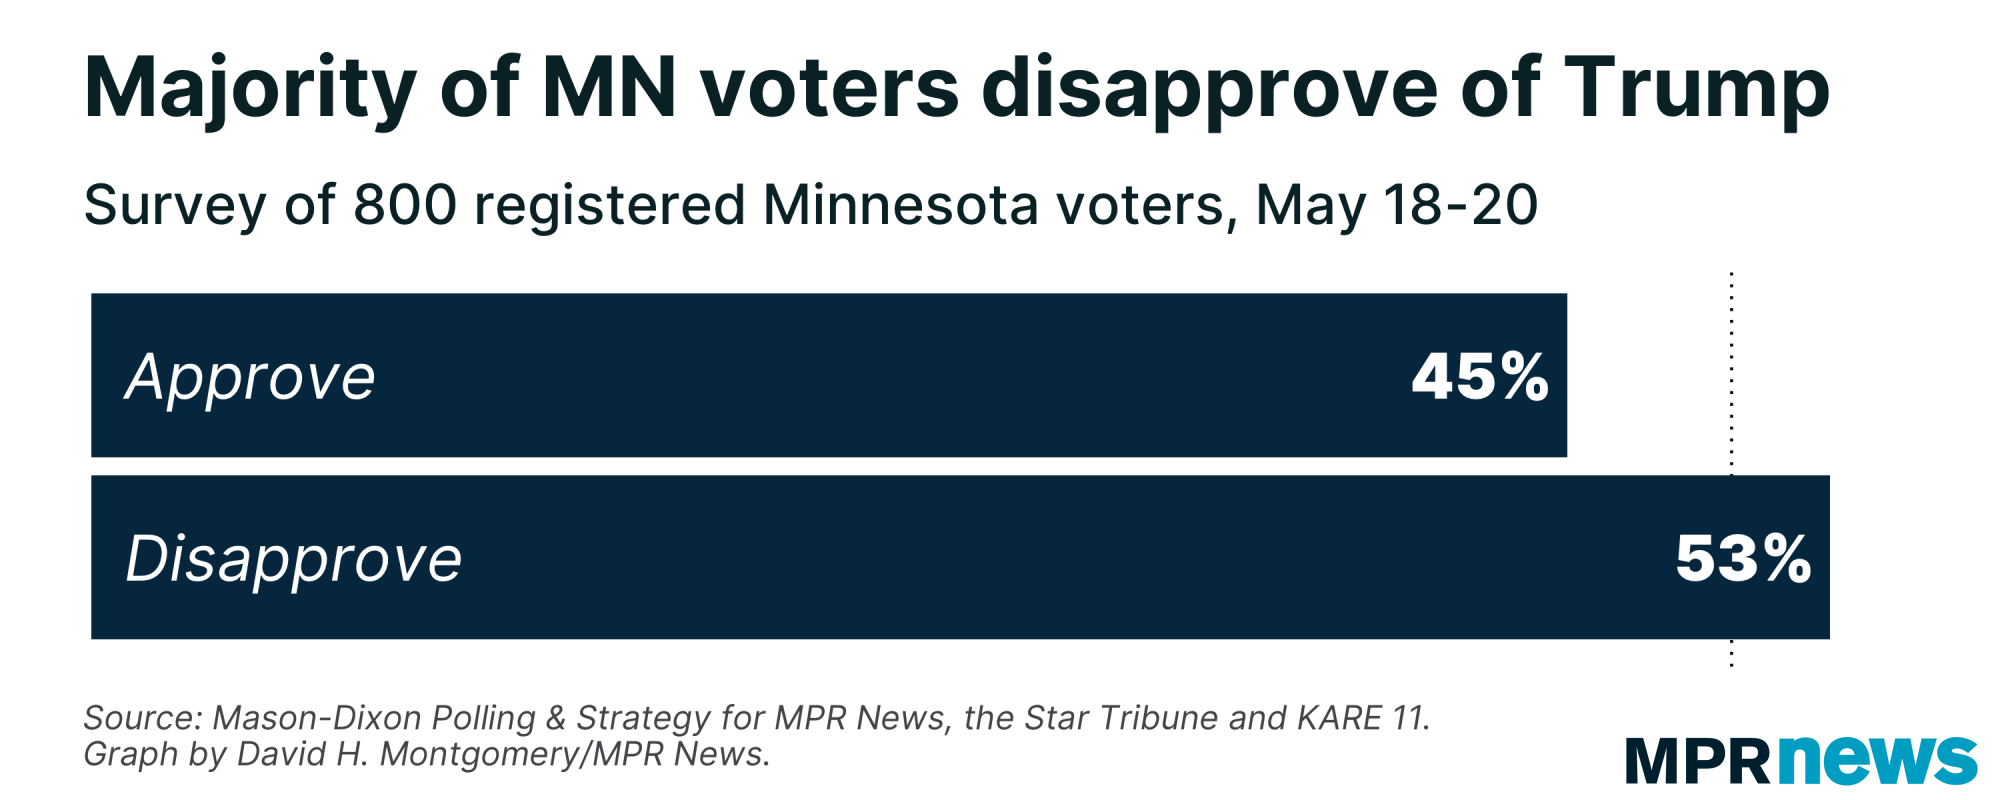 Trump's approval rating in Minnesota